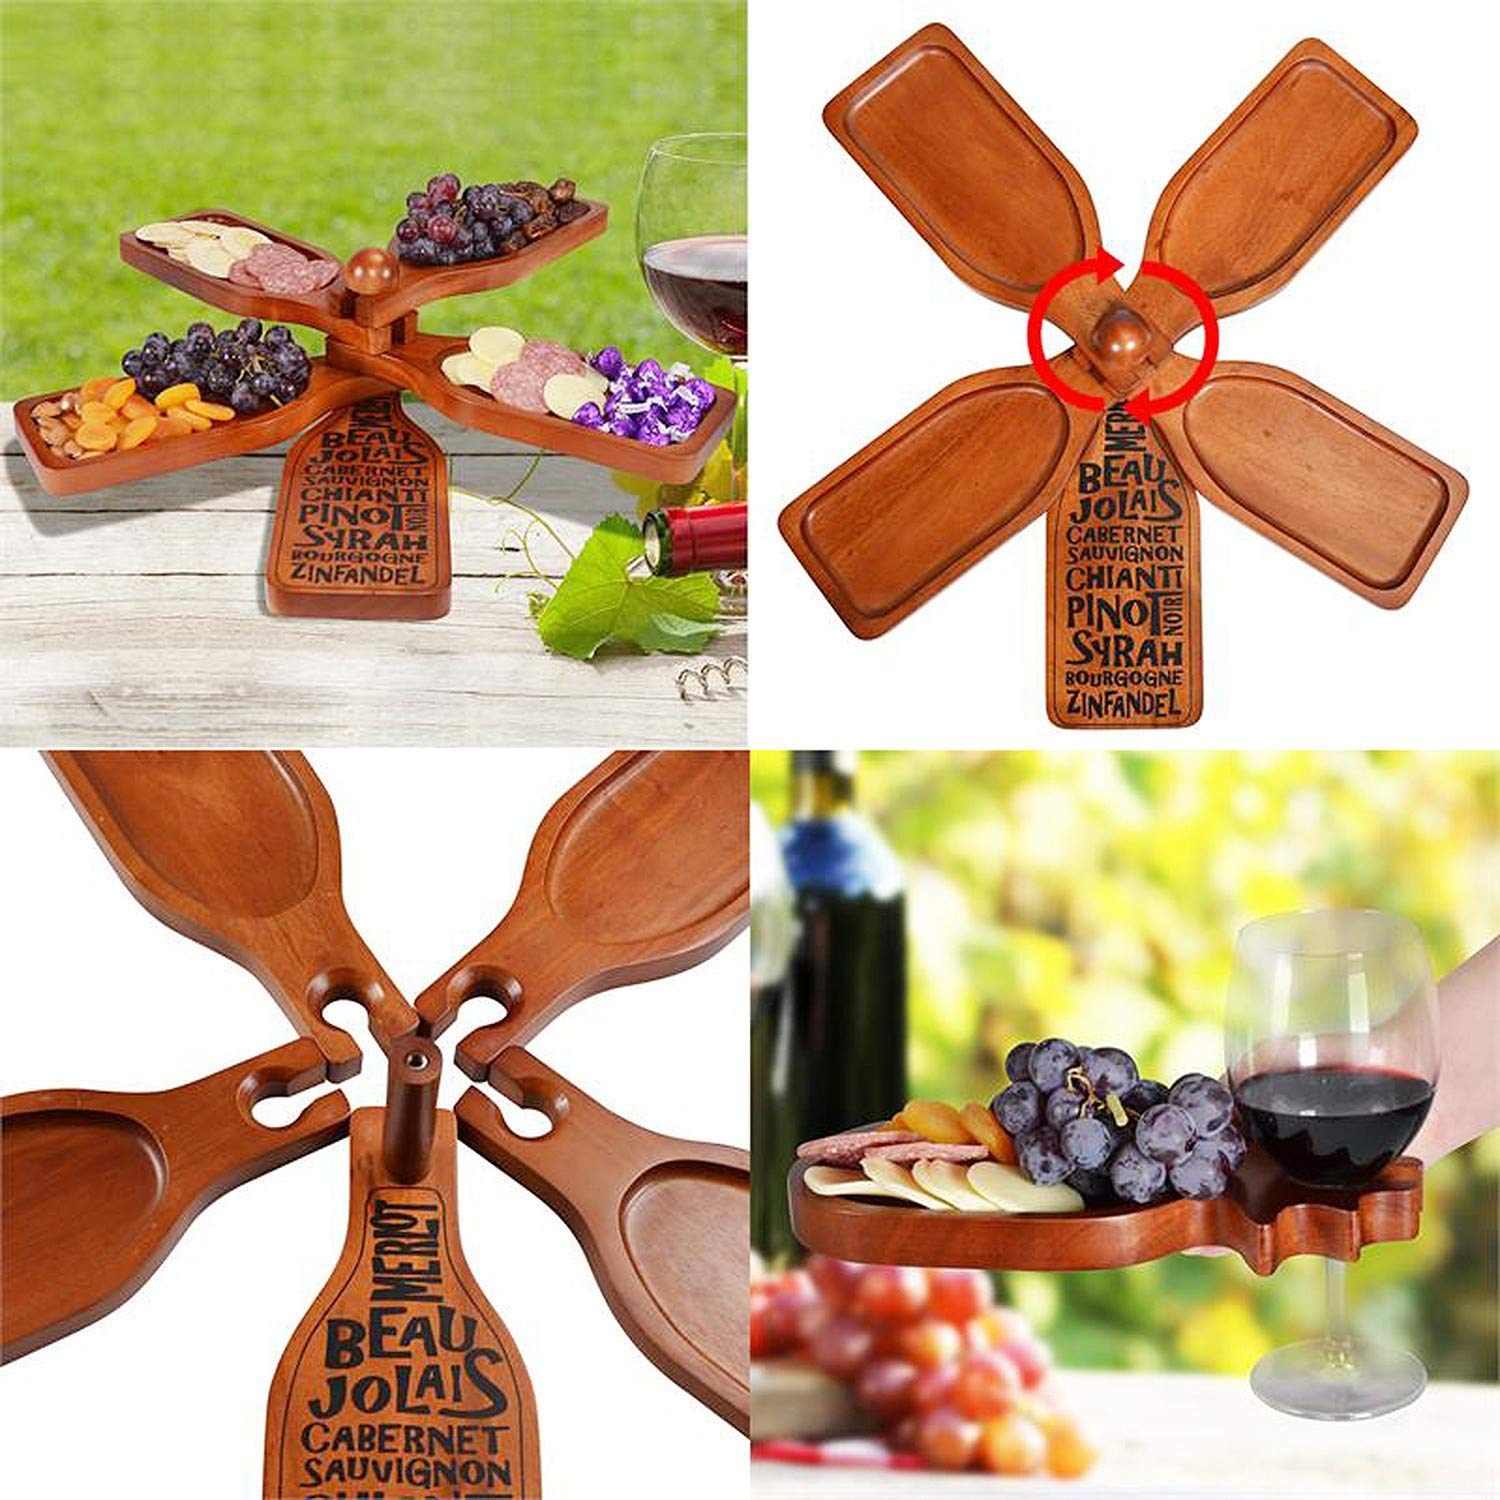 Mahogany Wood Wine Bottle Shaped Serving Platters With Display Stand Hold Meat Wine Glasses Fruit Primeware Wine Appetizer Plate Set Cheese